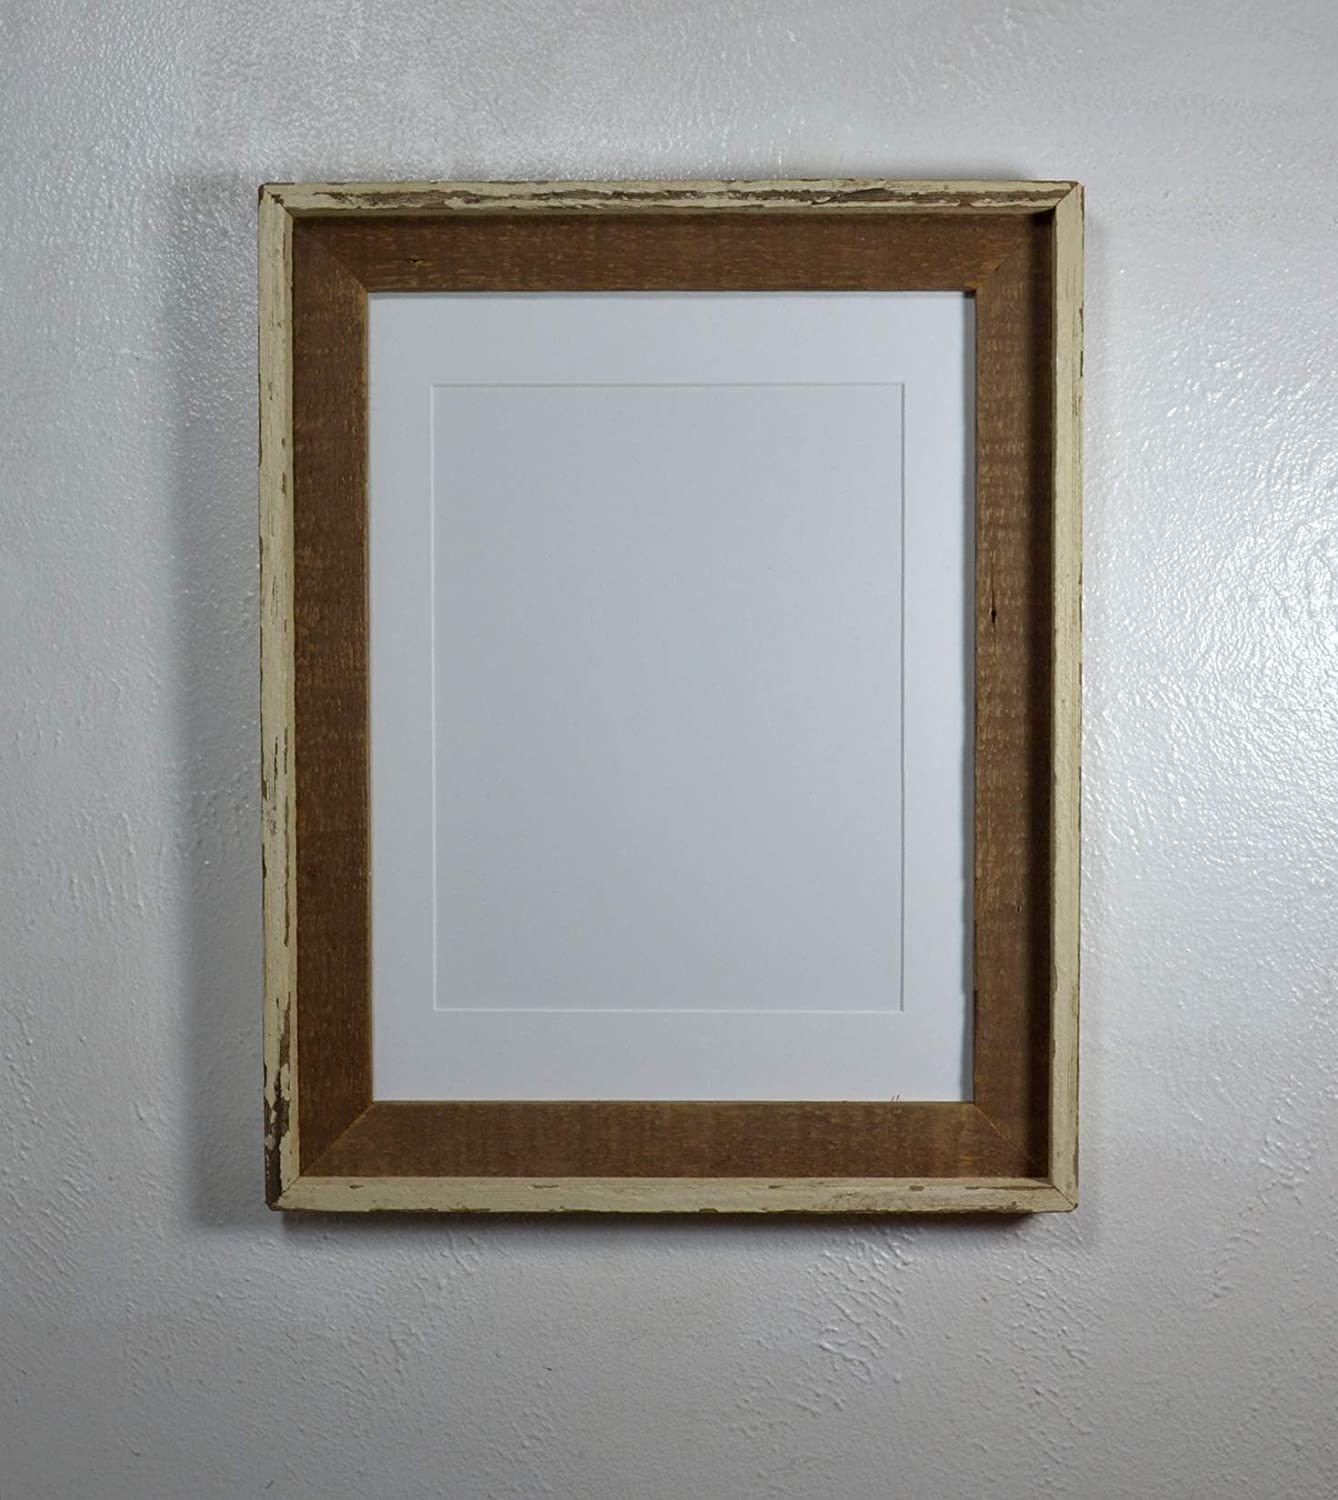 Off White Walls With Grey Trim Amazon.com: Rustic Picture Frame Reclaimed Wood Wall Hung 9x12 Off White  Mat With Glass 12x16 Without Mat: Handmade